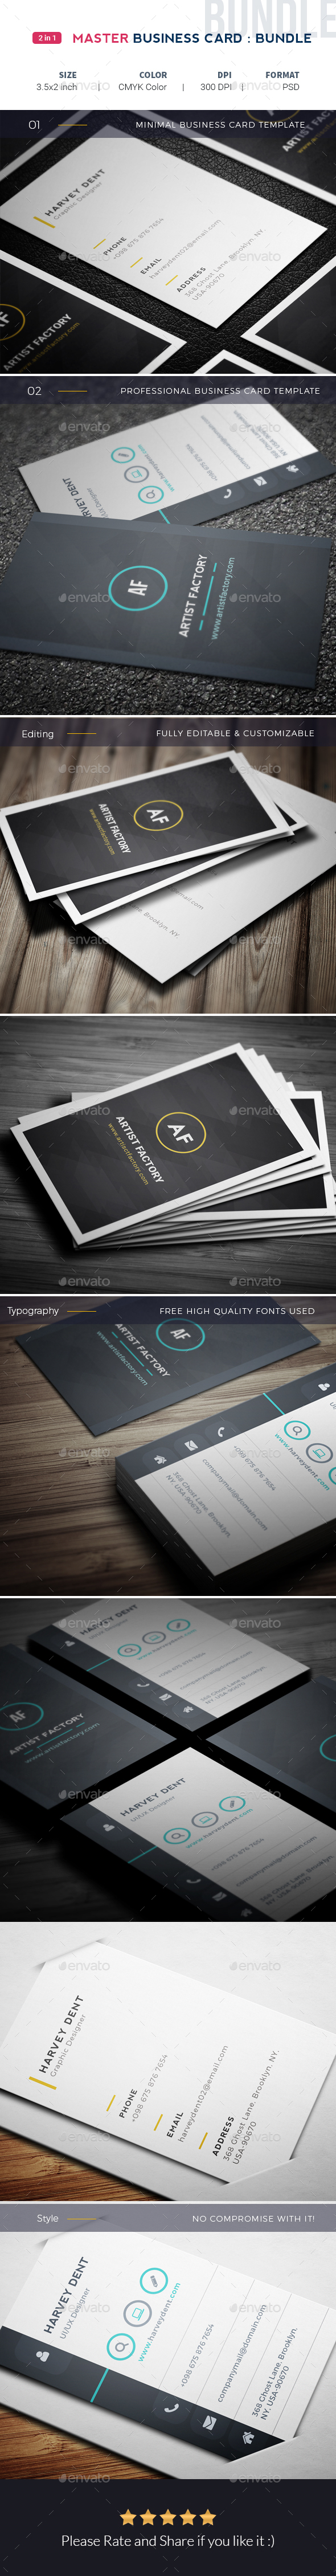 Master Business Card Bundle - Corporate Business Cards